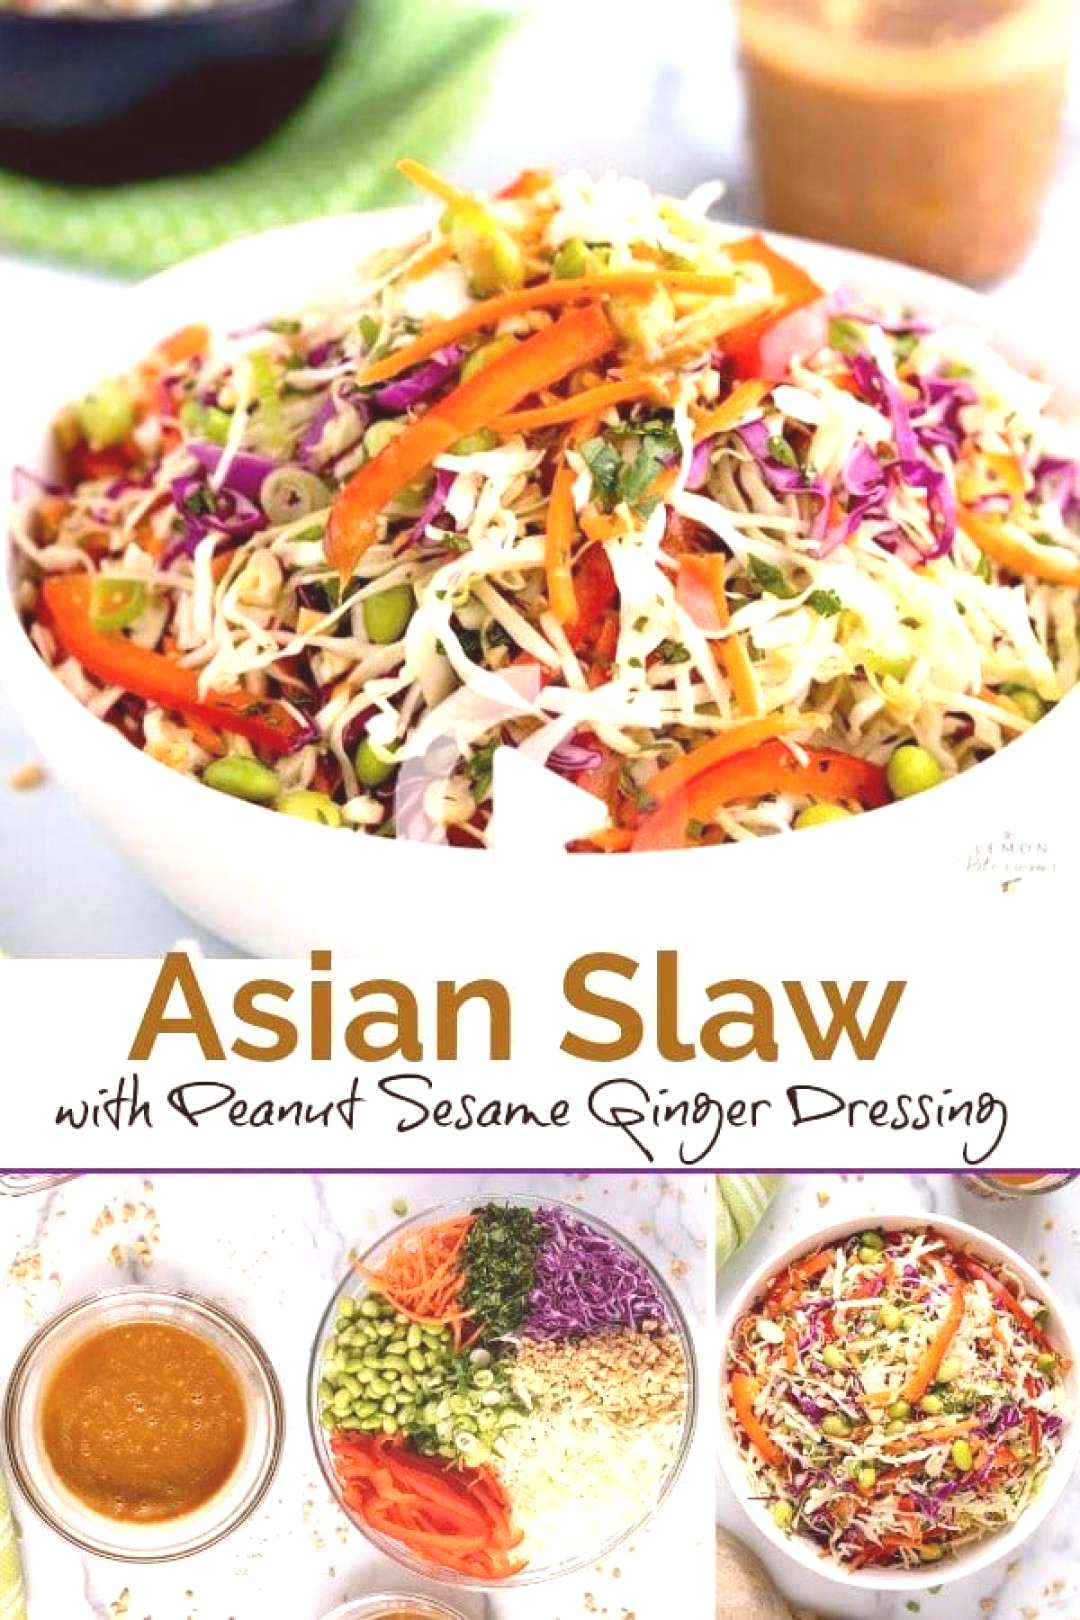 Asian Slaw with Peanut Sesame Ginger Dressing This Asian Slaw is crispy, crunchy and tossed in the